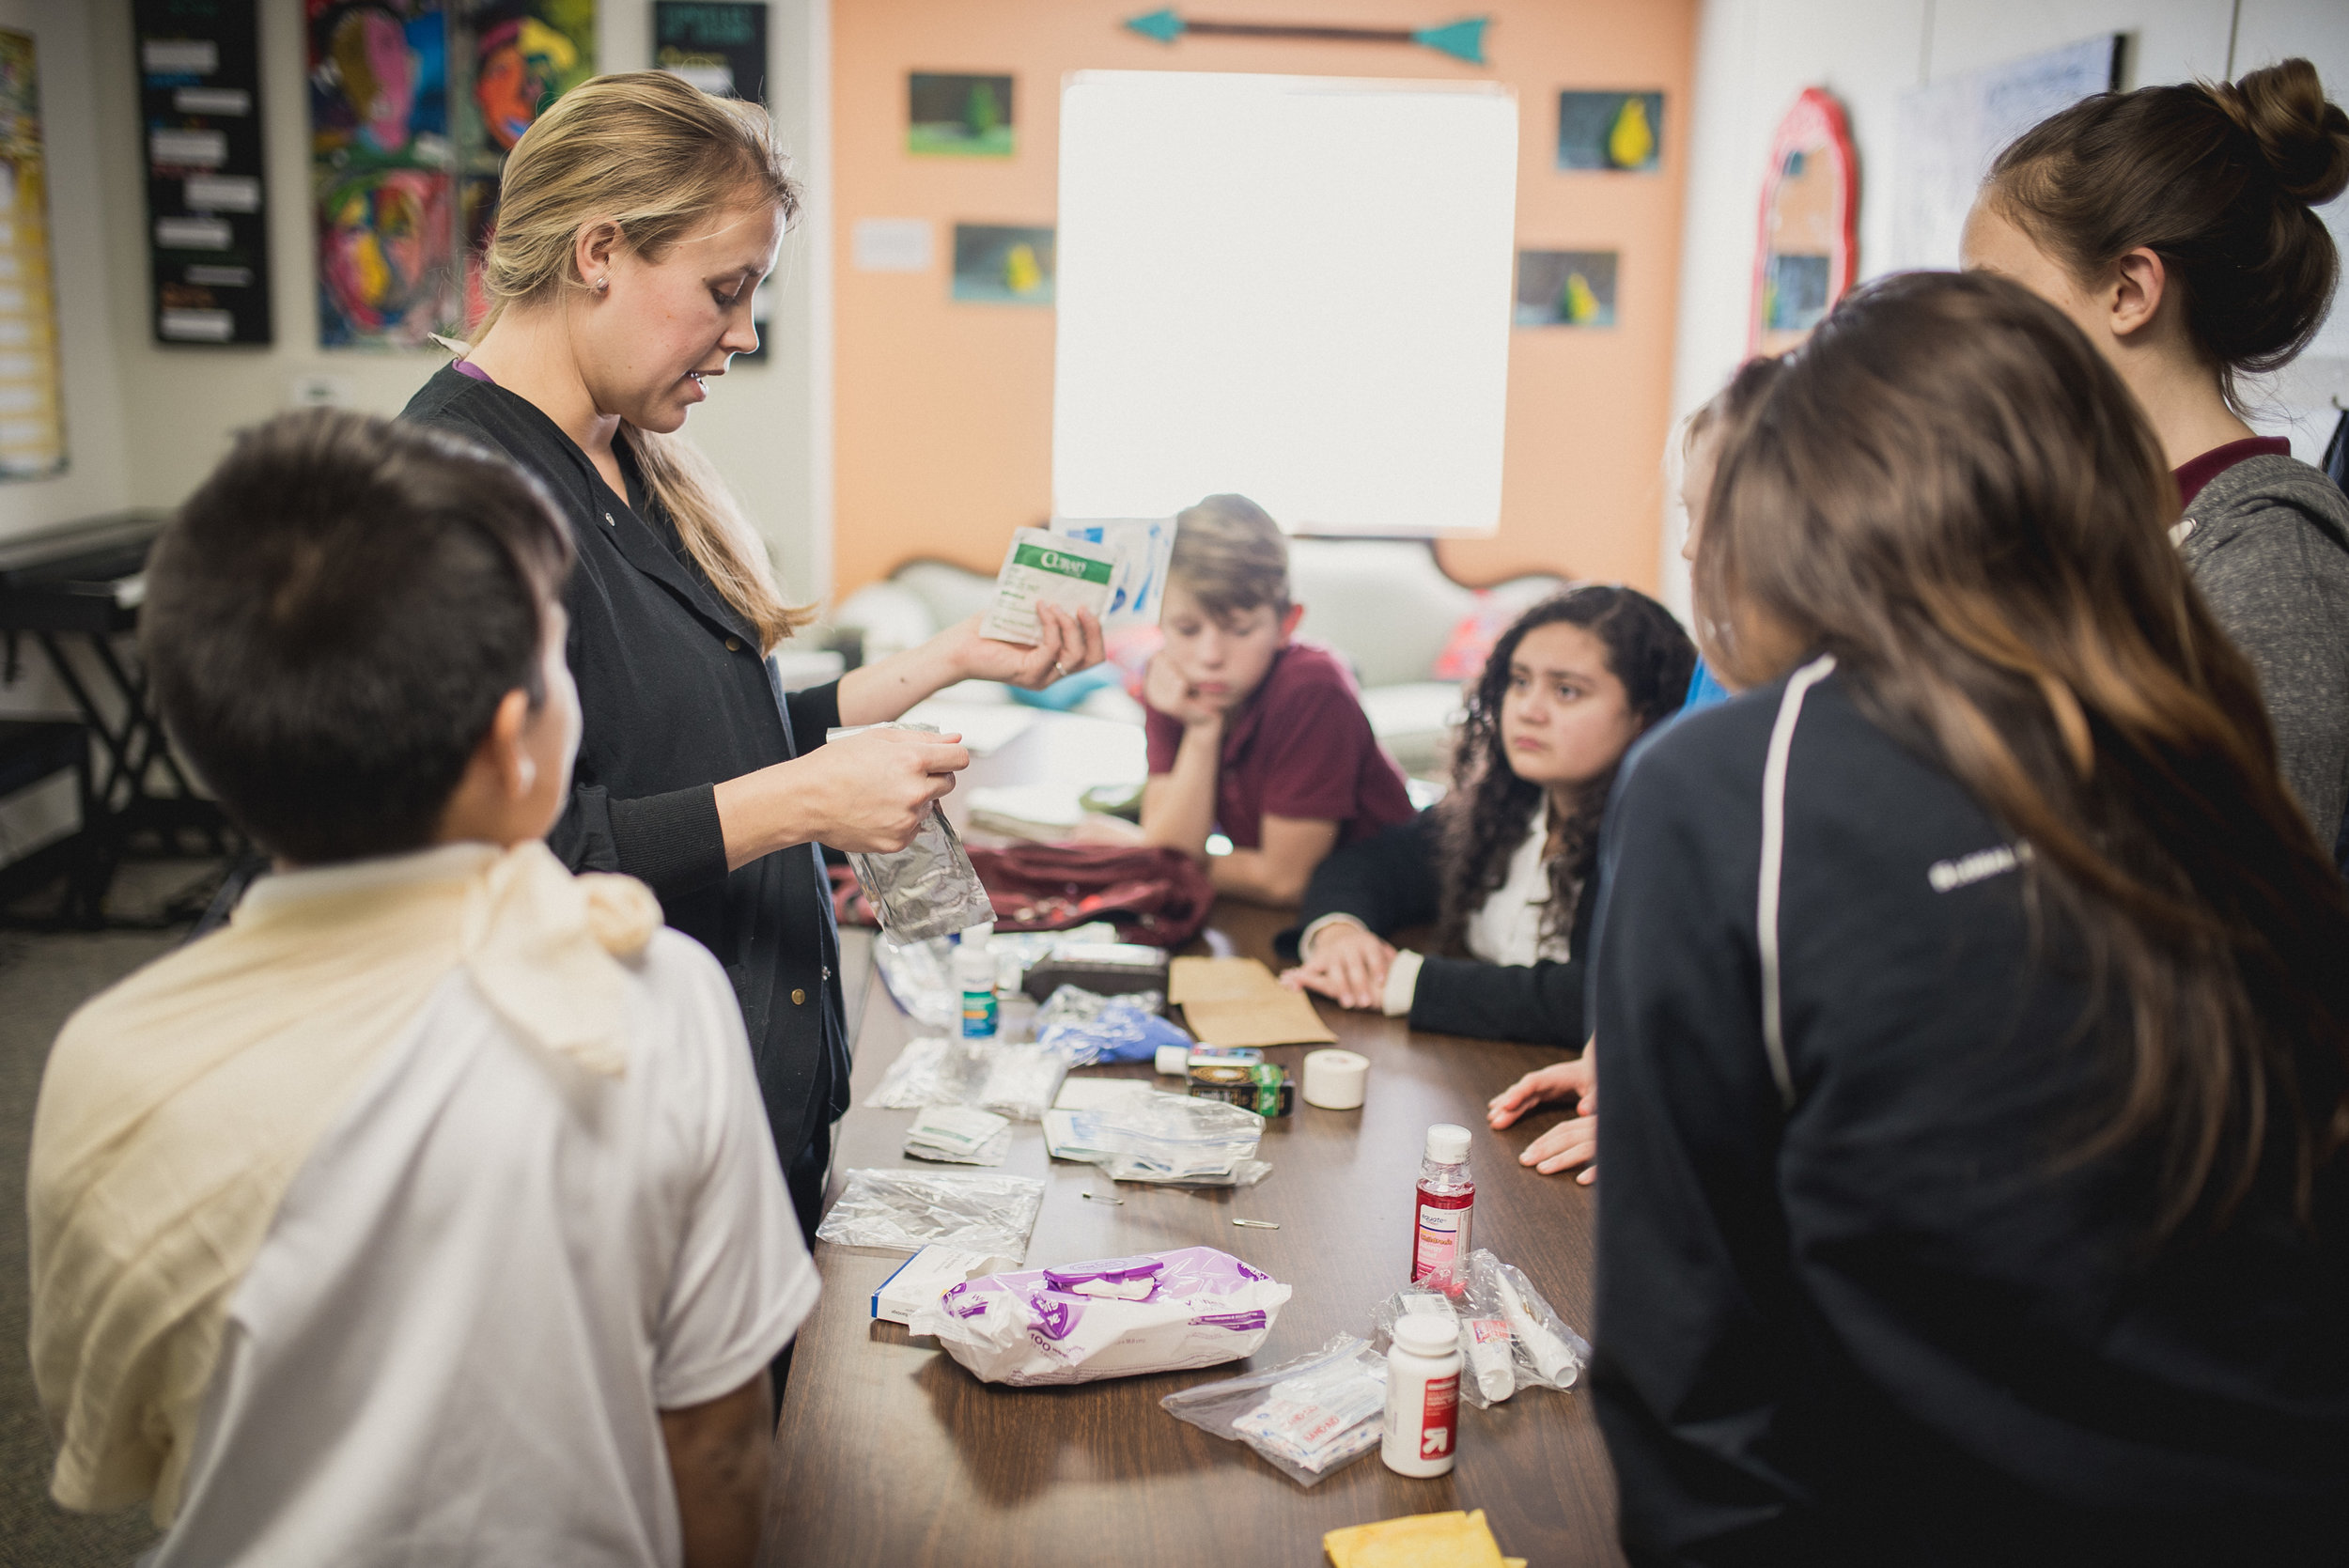 Amanda teaches a first aid class to middle schoolers at the Academy for G.O.D.